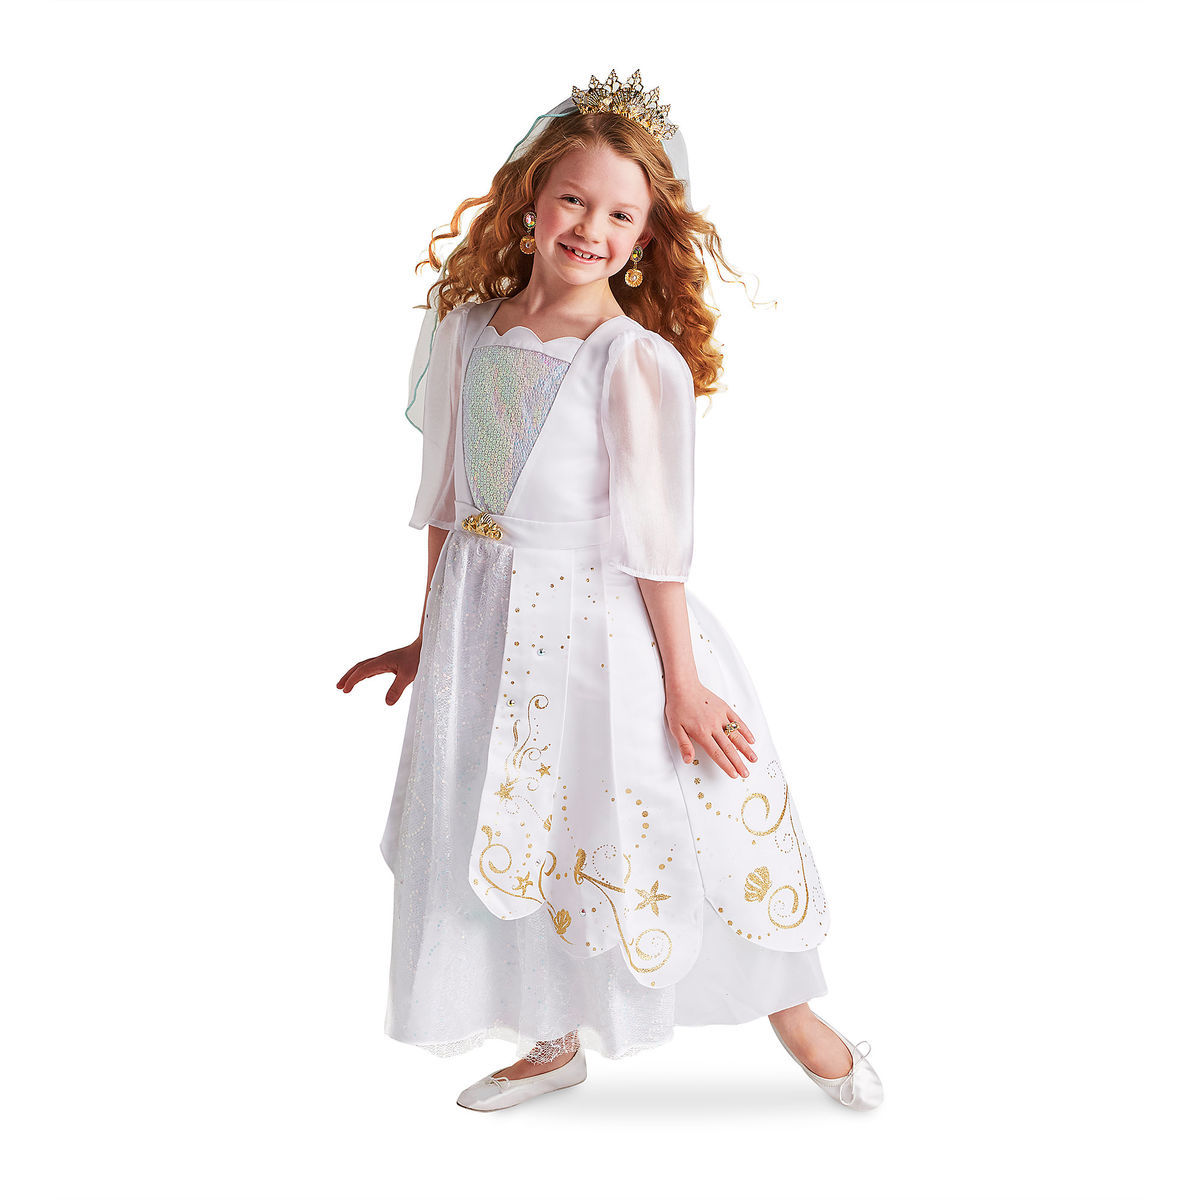 Ariel Deluxe Wedding Costume Collection For Kids Shopdisney